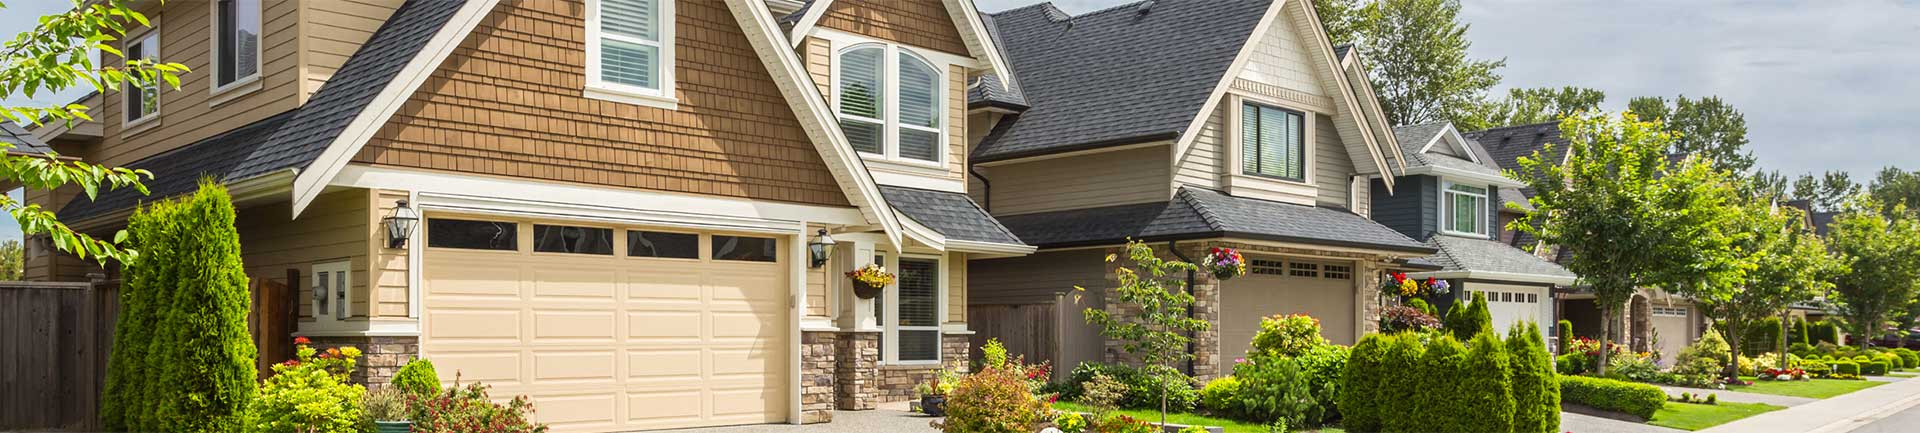 Free virtual estimates for your home or commercial building projects